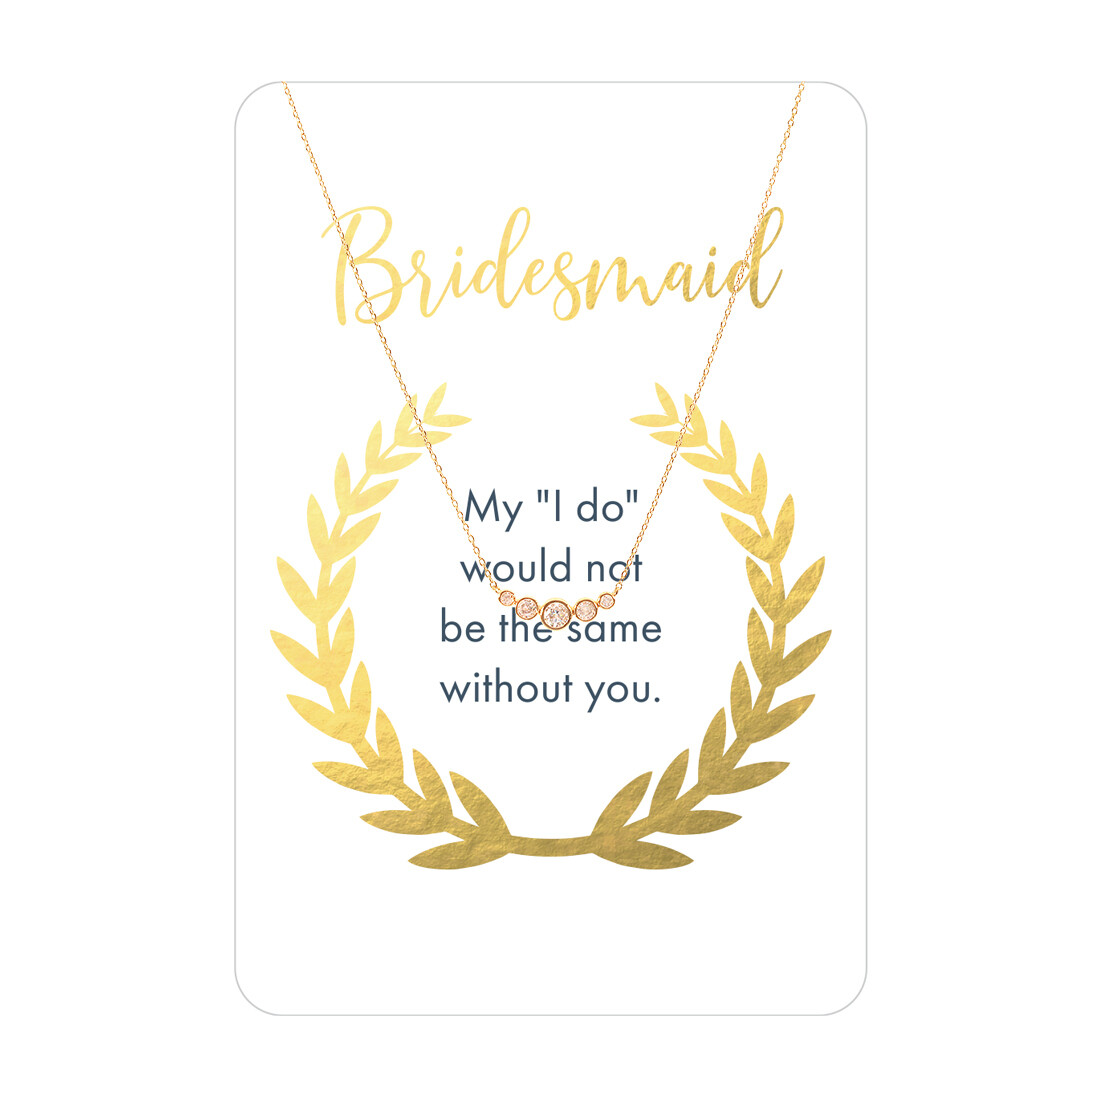 Gold Five Stone CZ Bridesmaid Necklace Card